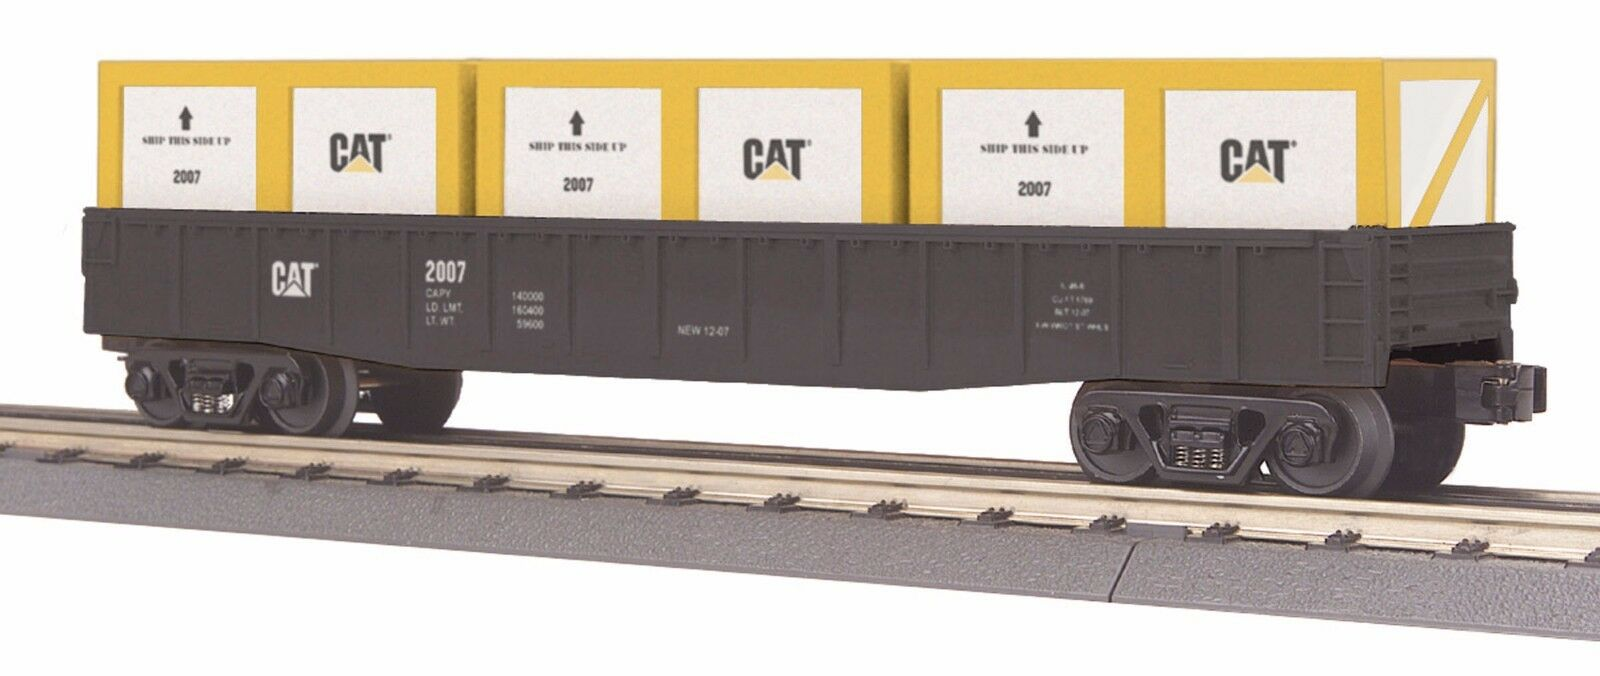 30-72002 Caterpillar Gondola Car w Crates - MTH Rail King